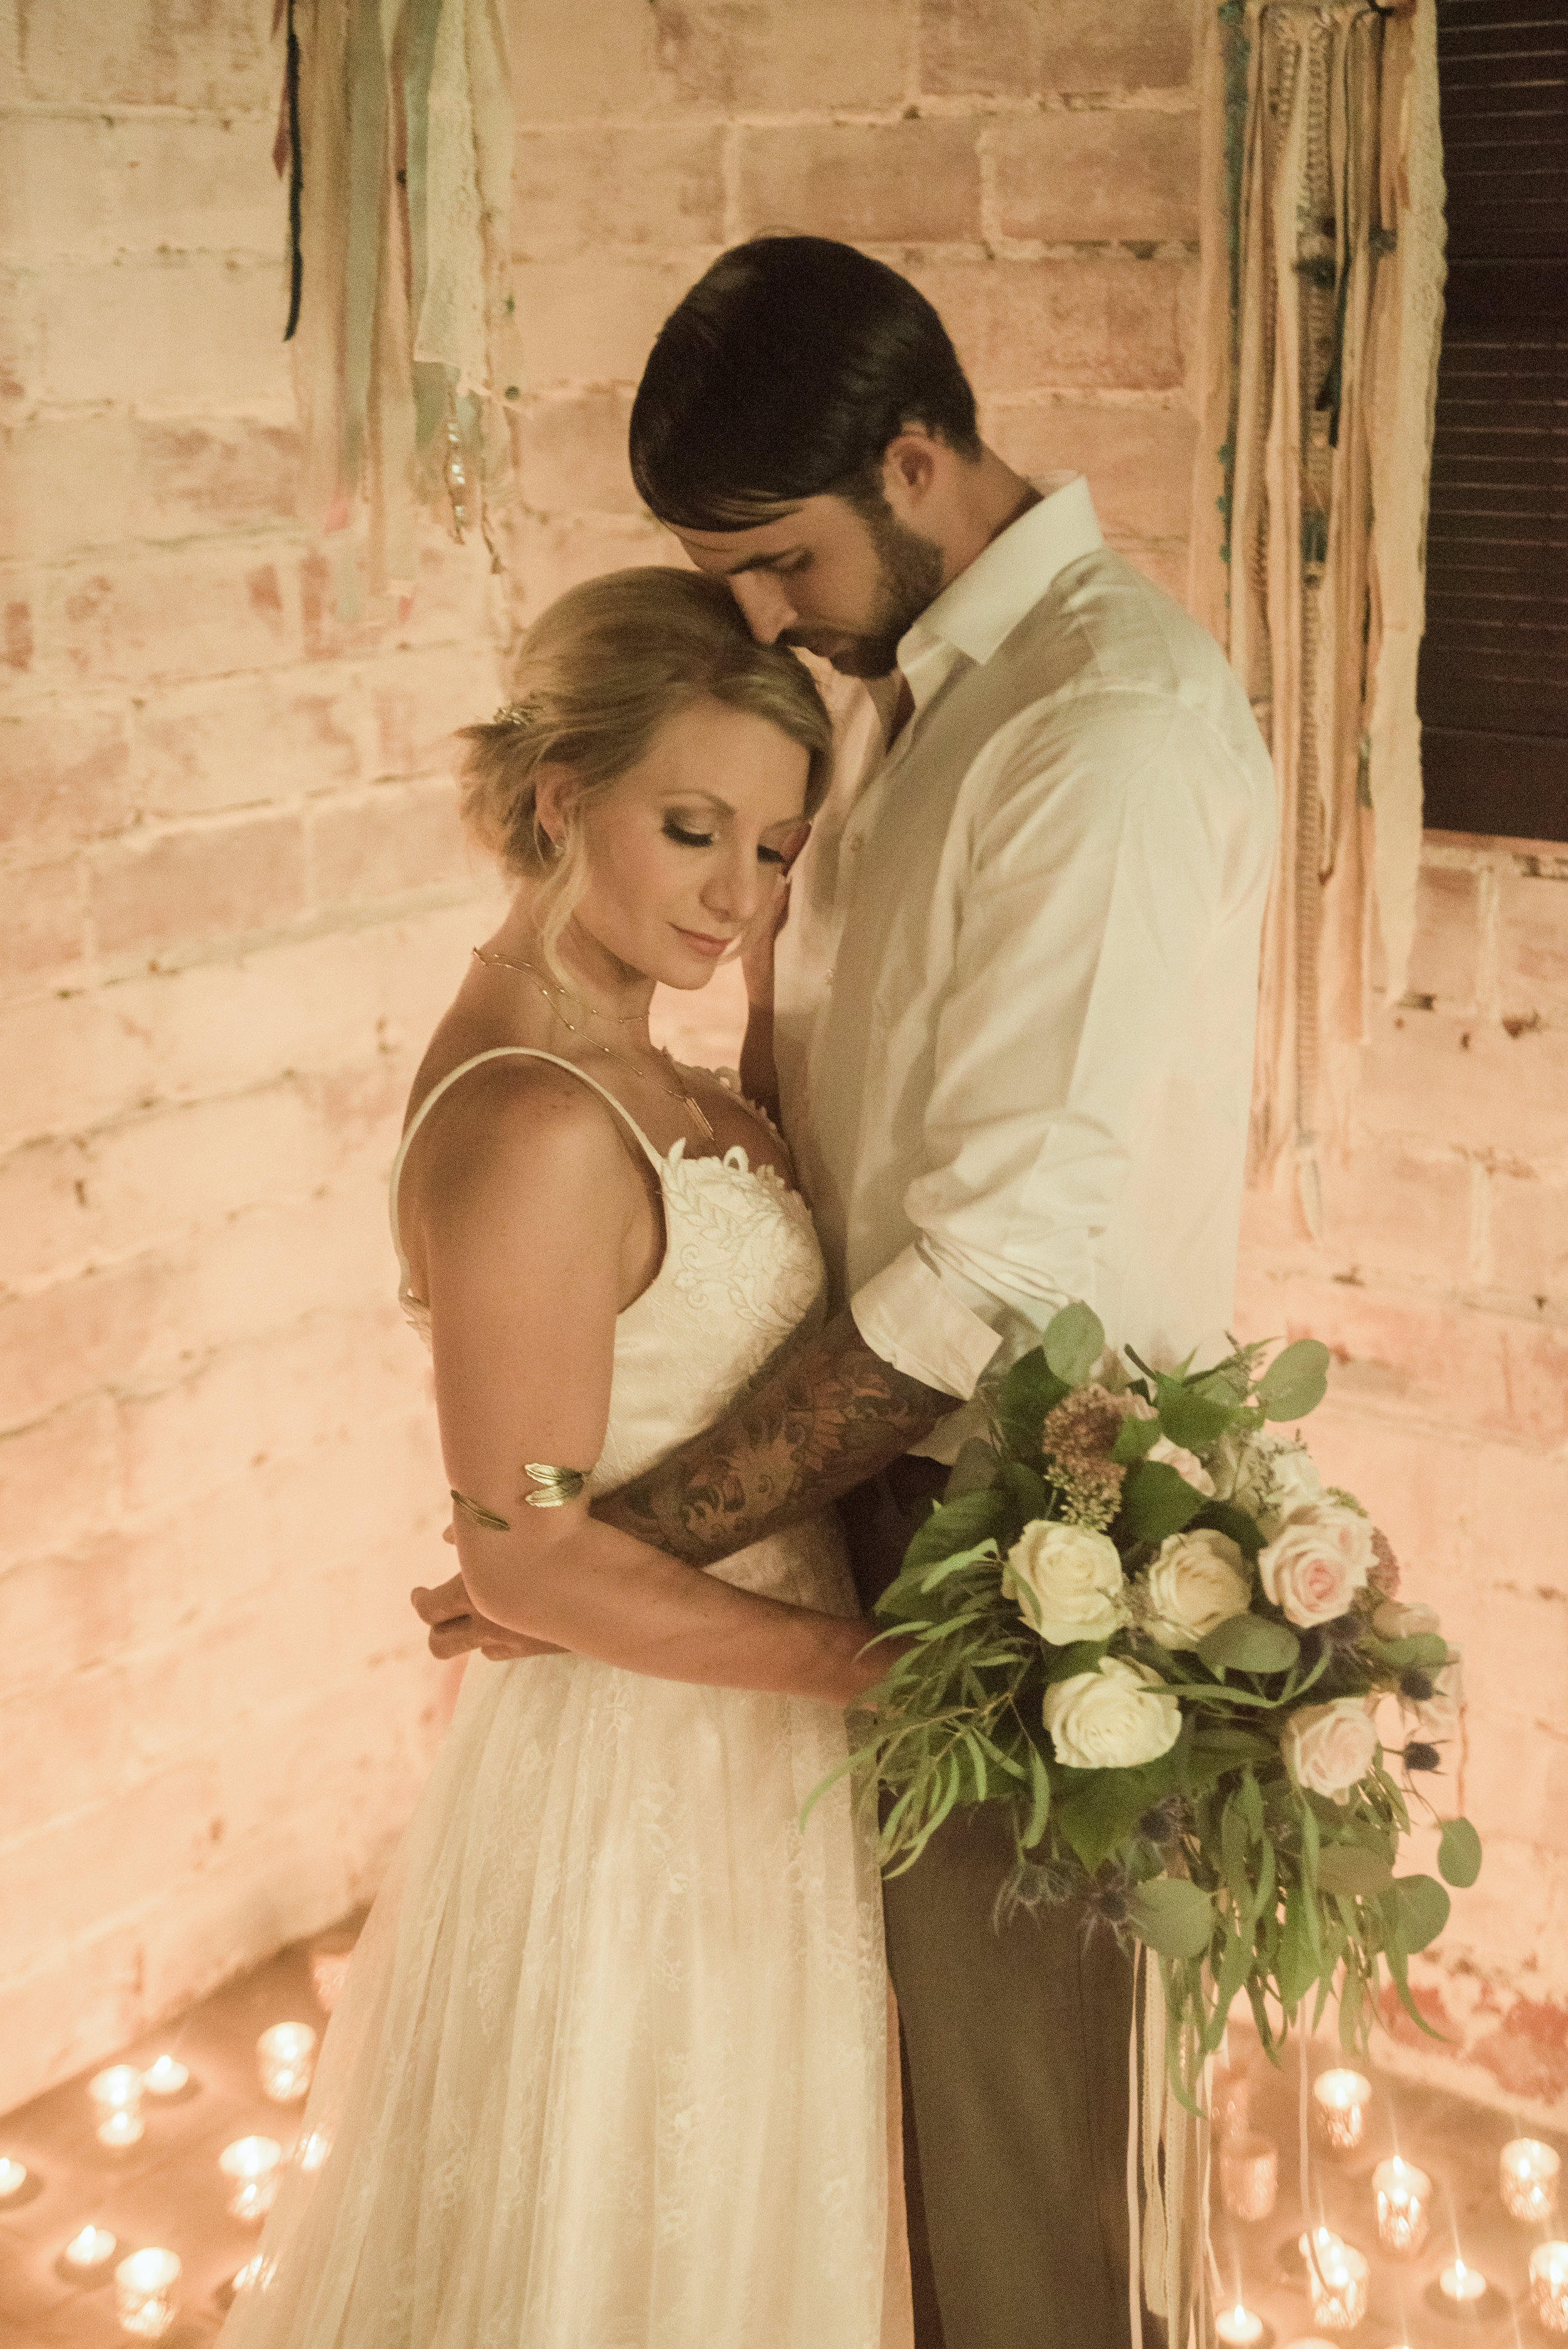 Models Nicole Oidtman and David Elkins pose bathed by candlelight in the stunning stable turned wedding venue.